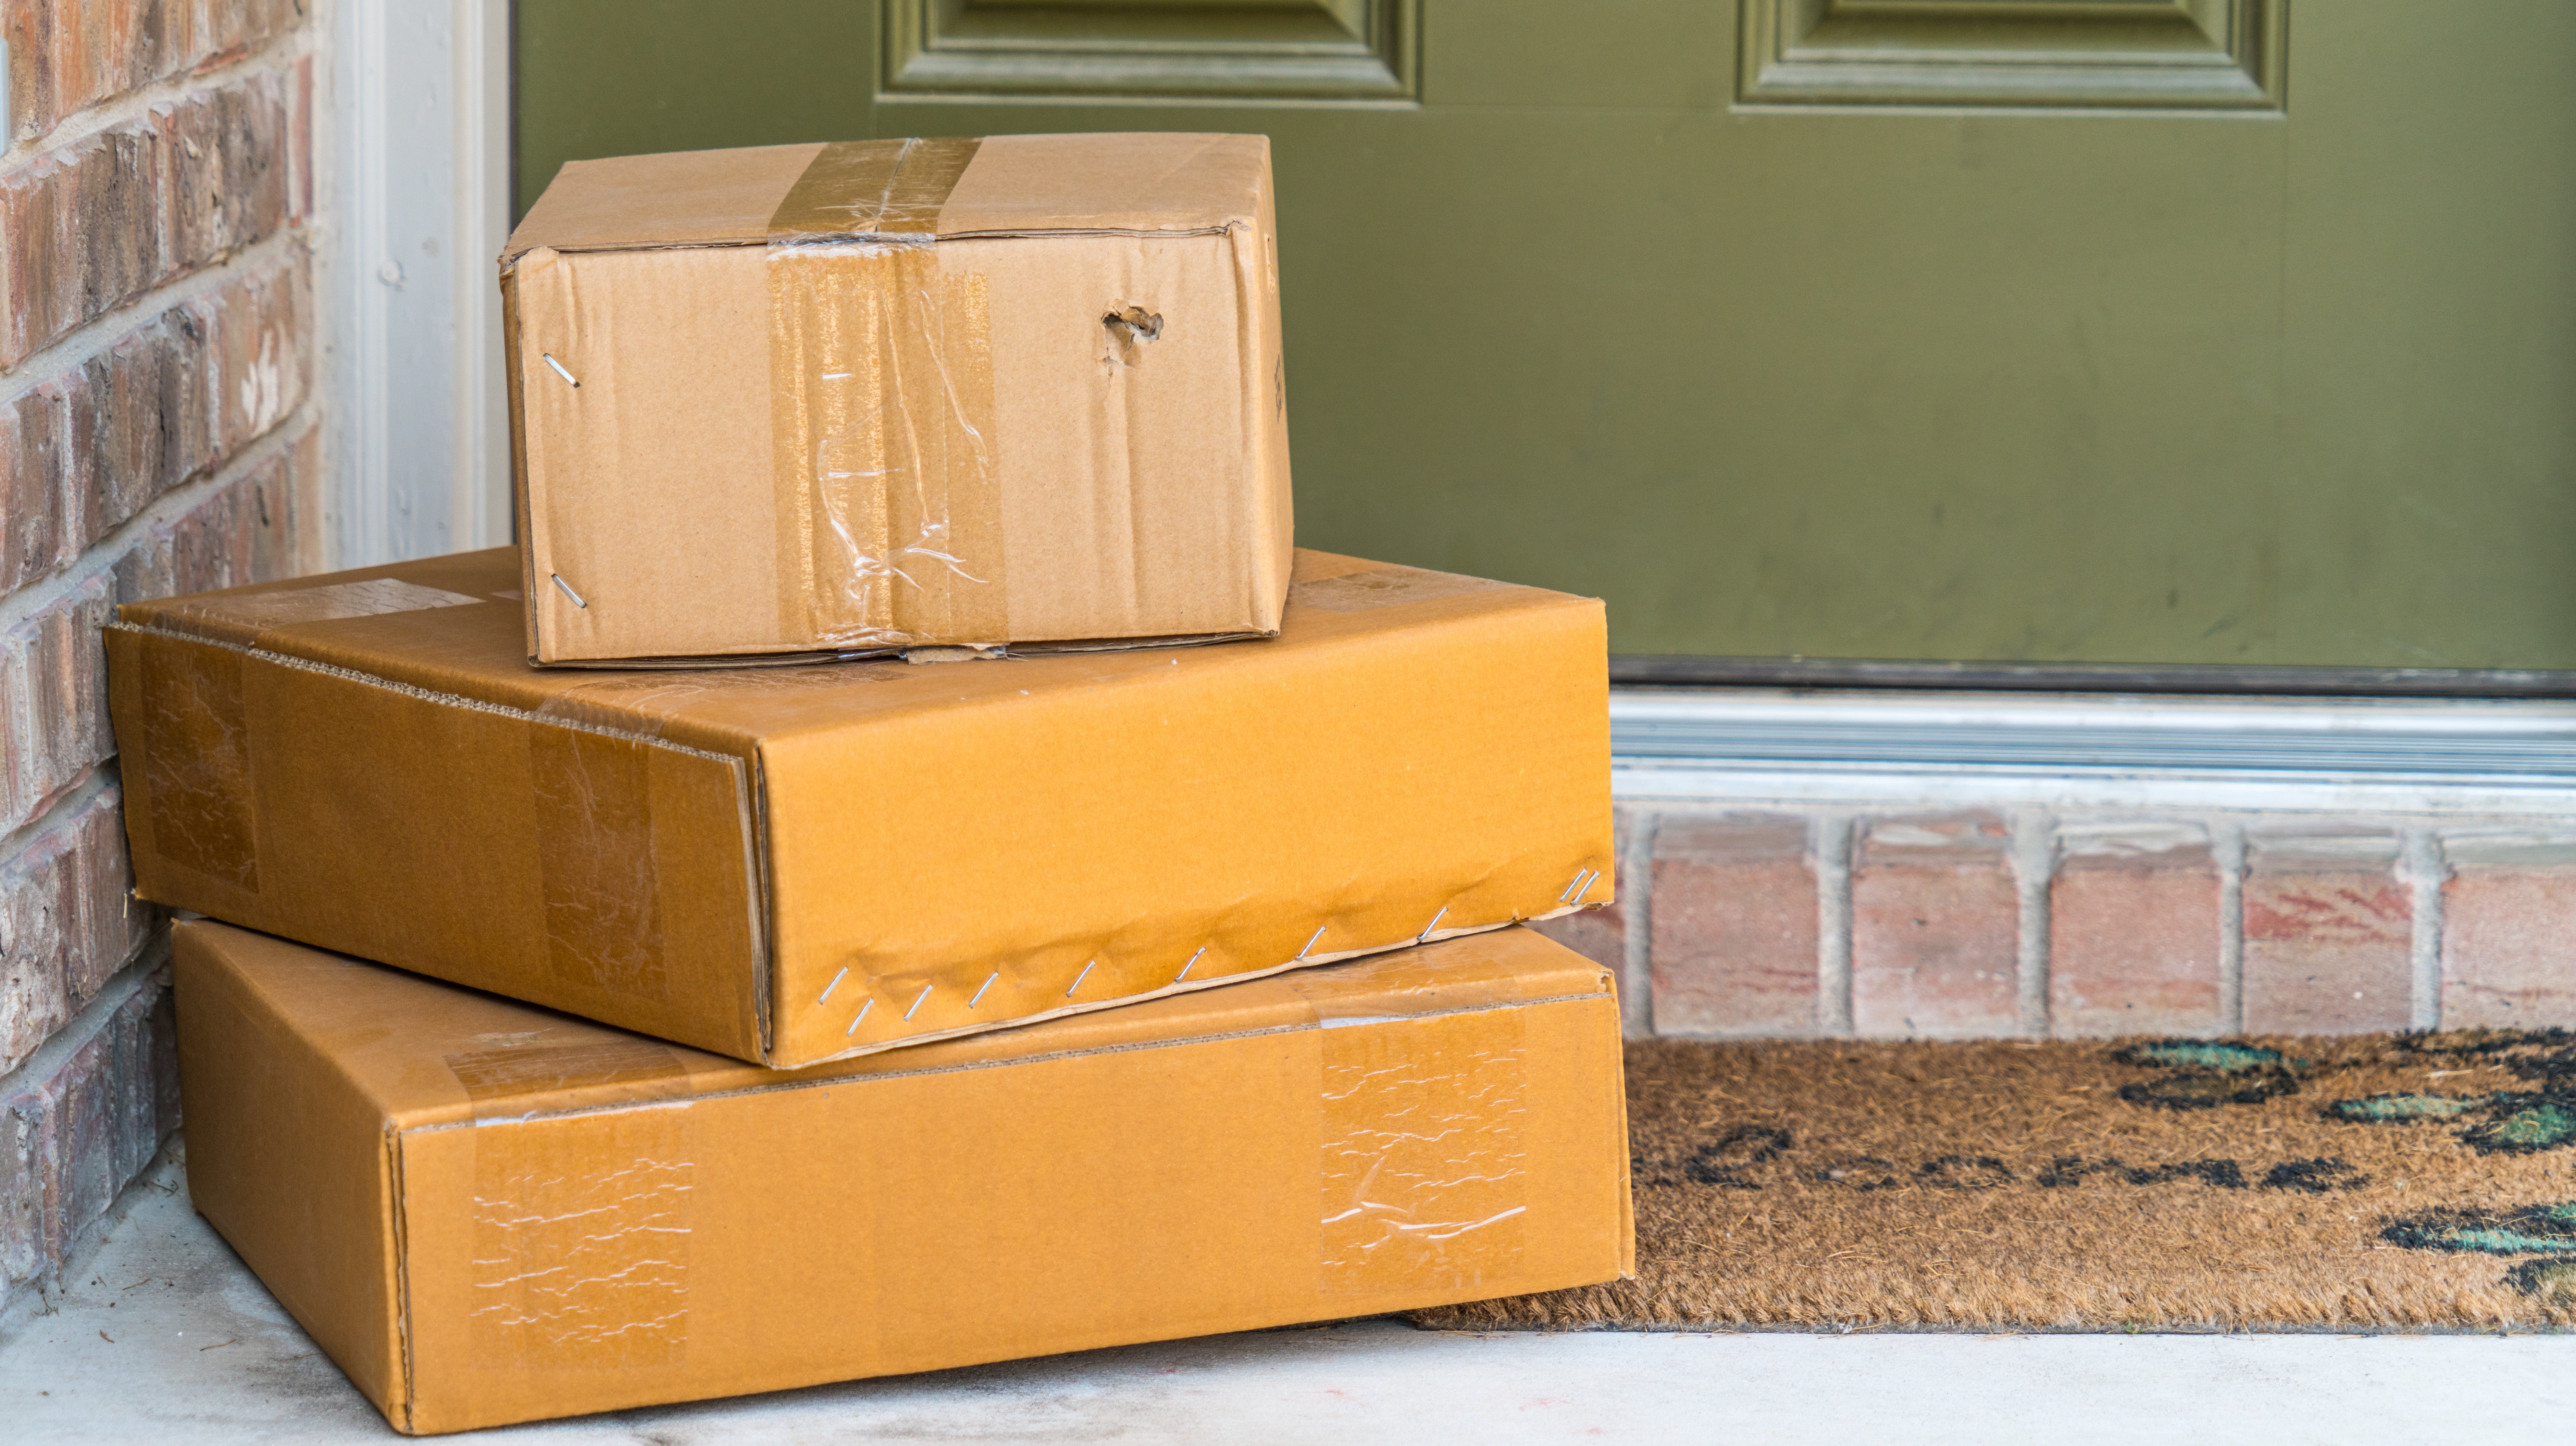 How To Prevent Porch Pirates From Stealing Your Packages While You're Out Of Town